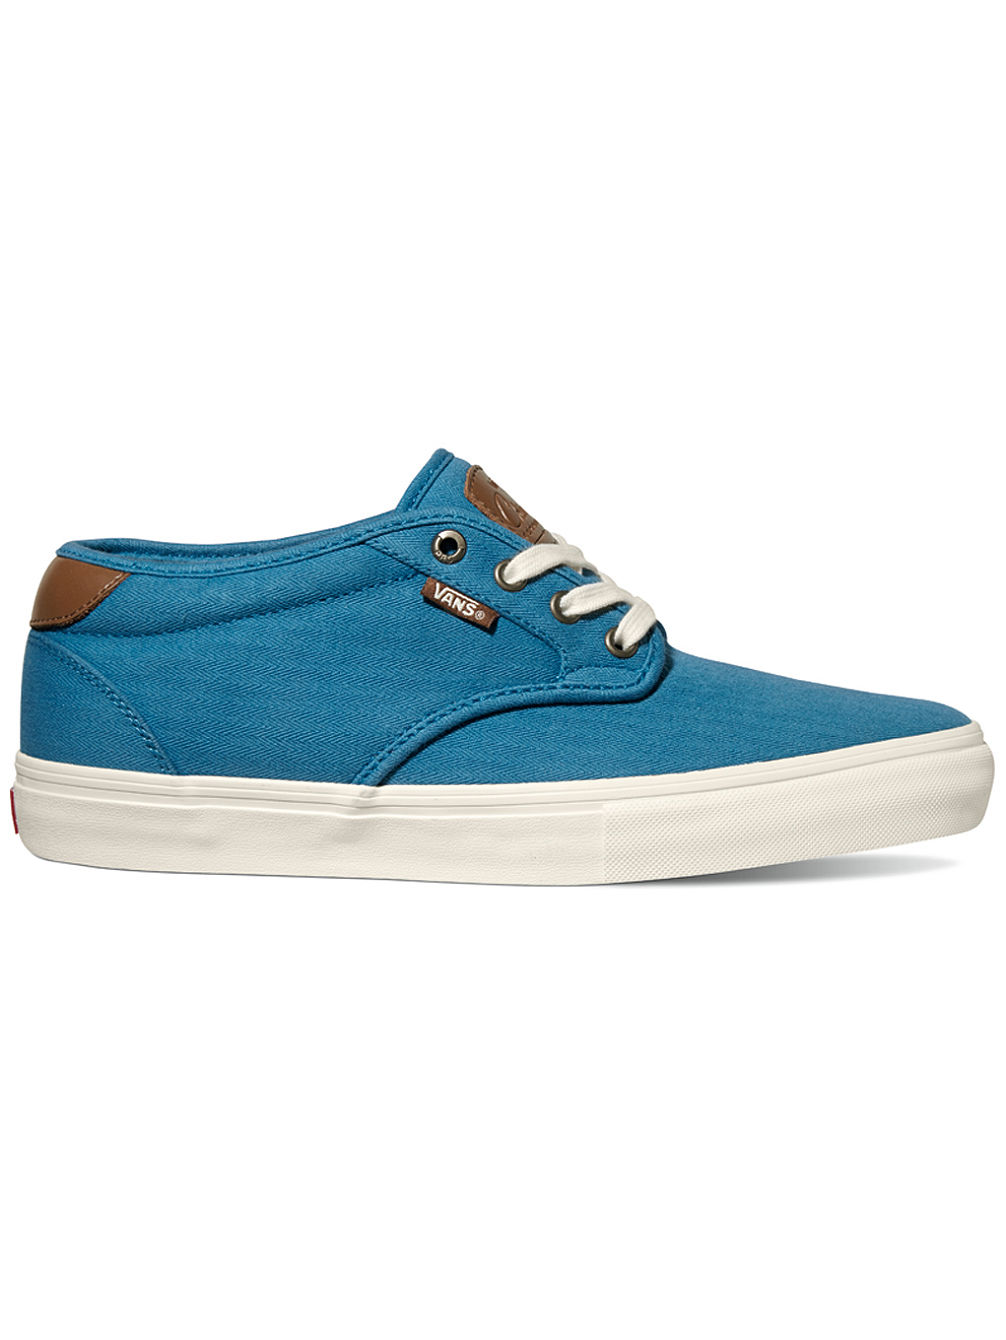 vans-chima-estate-pro-skate-shoes